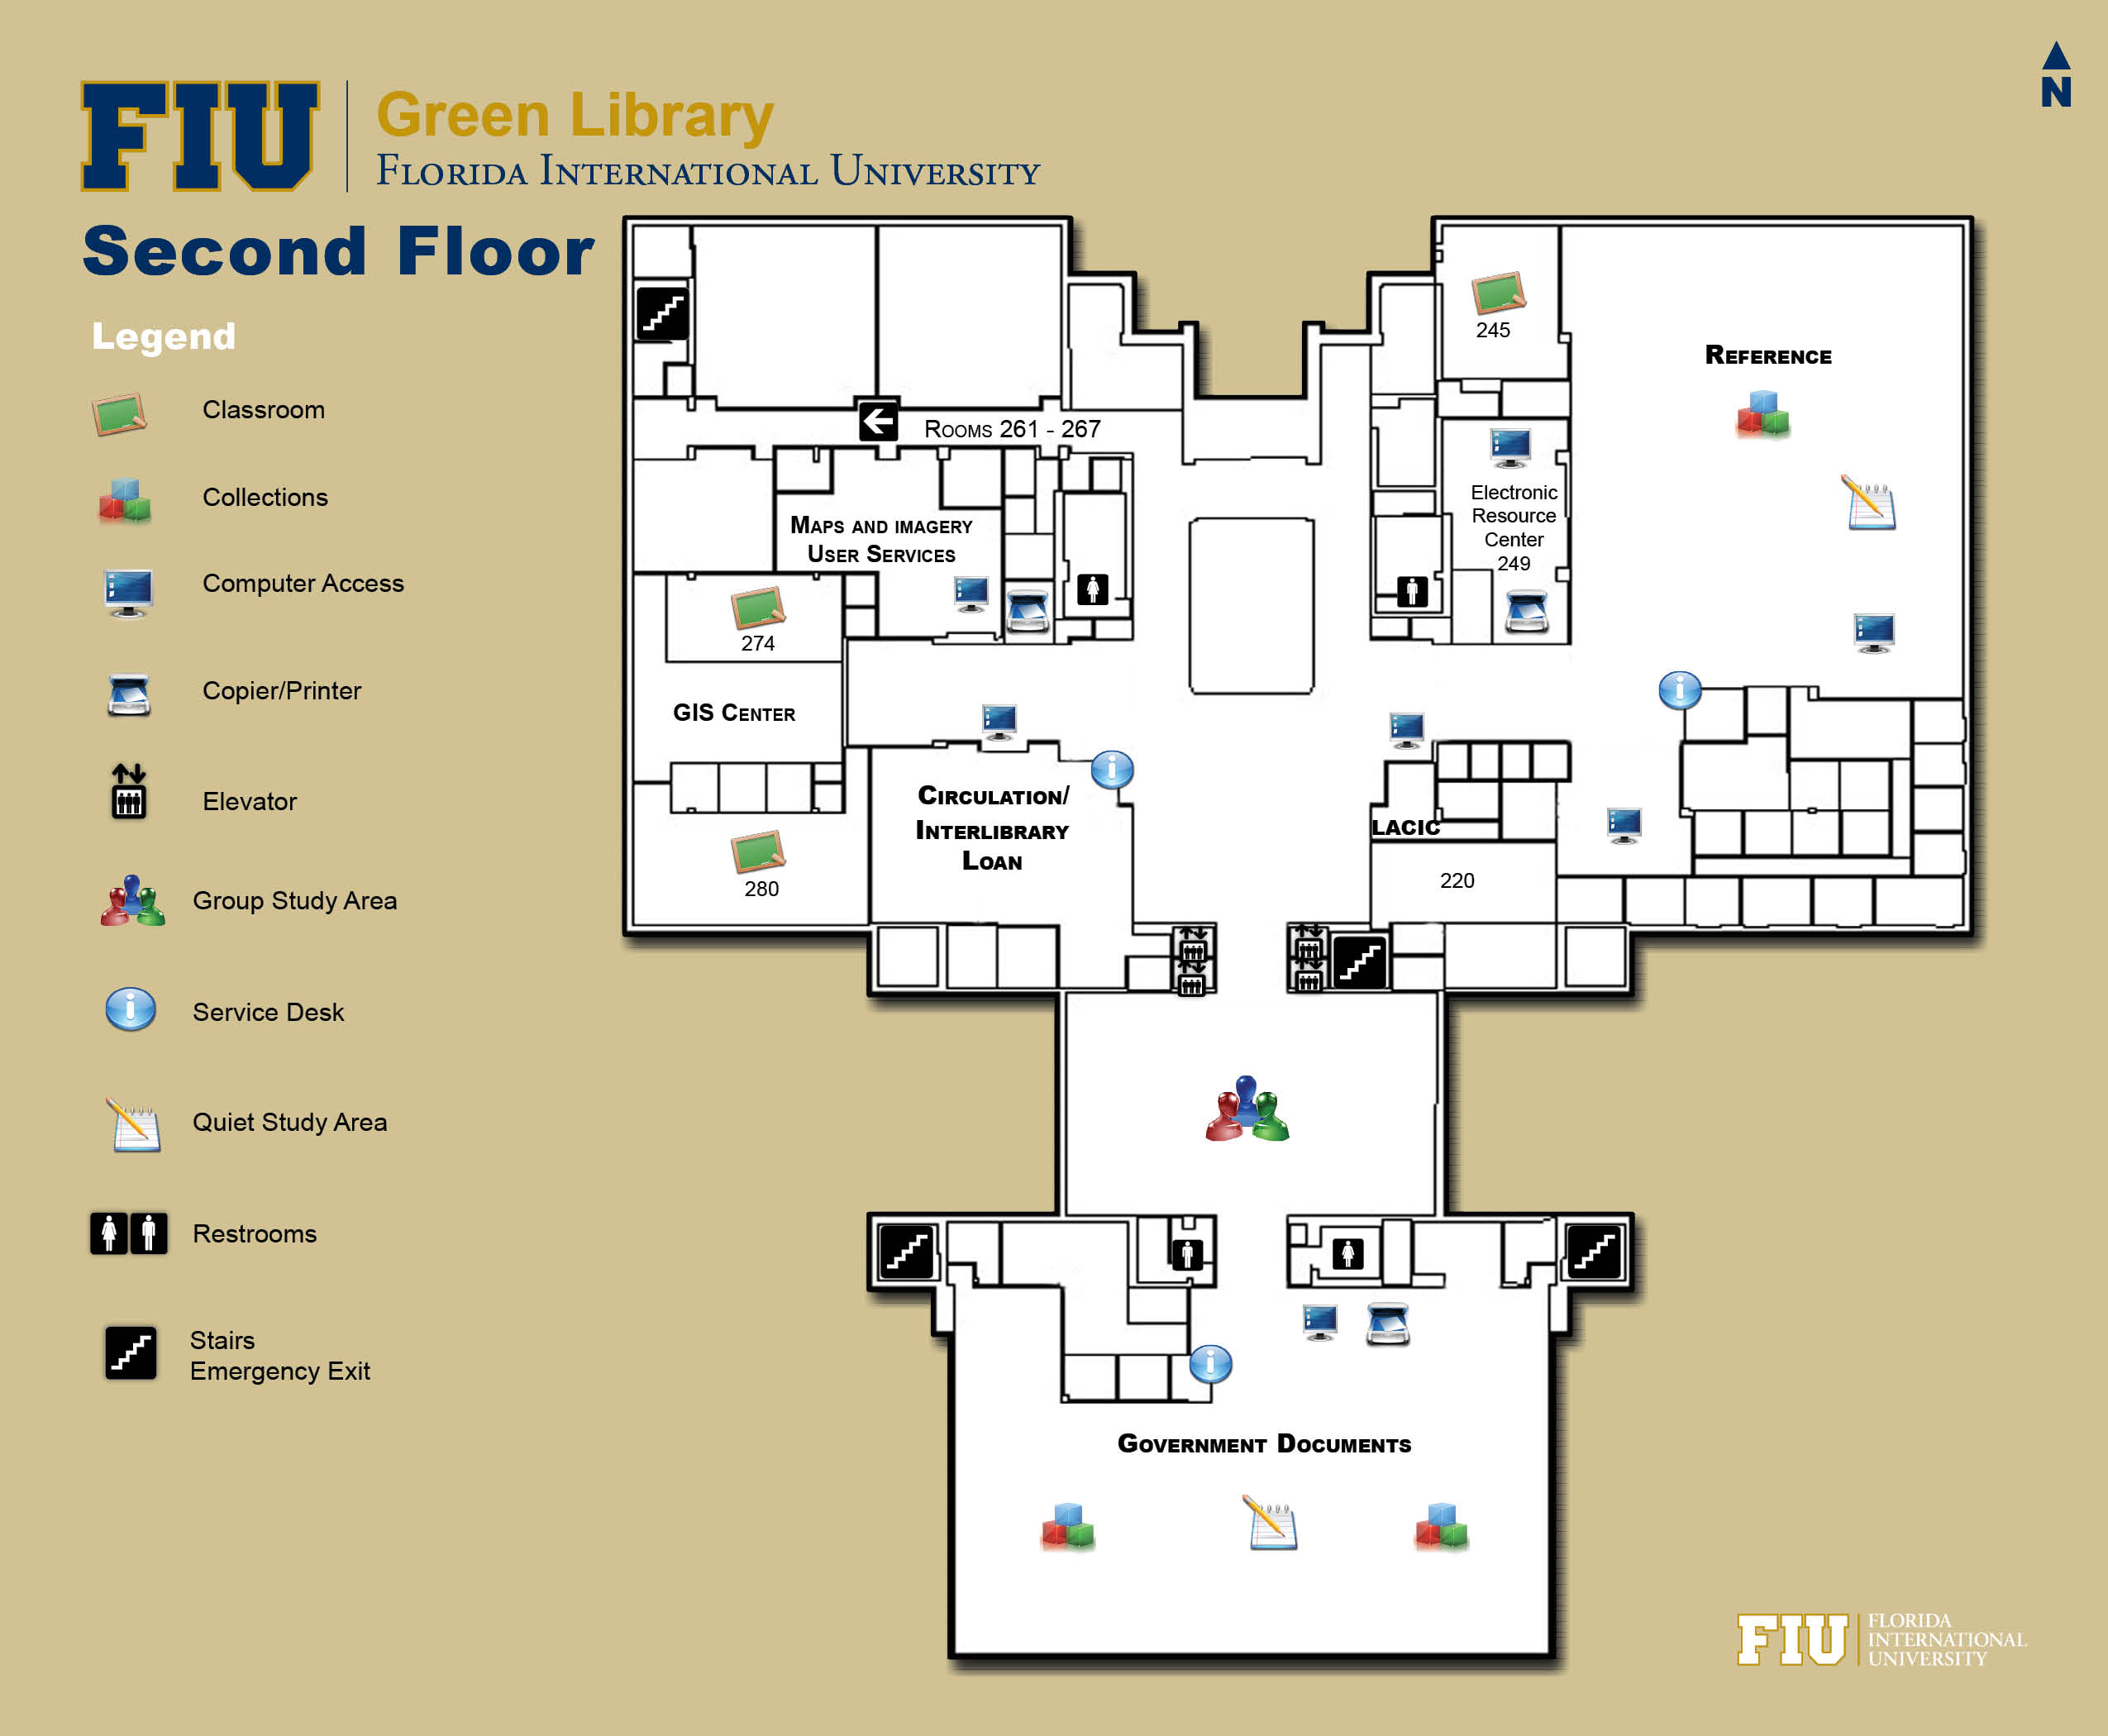 Floorplan for Floor 2 of Green Library